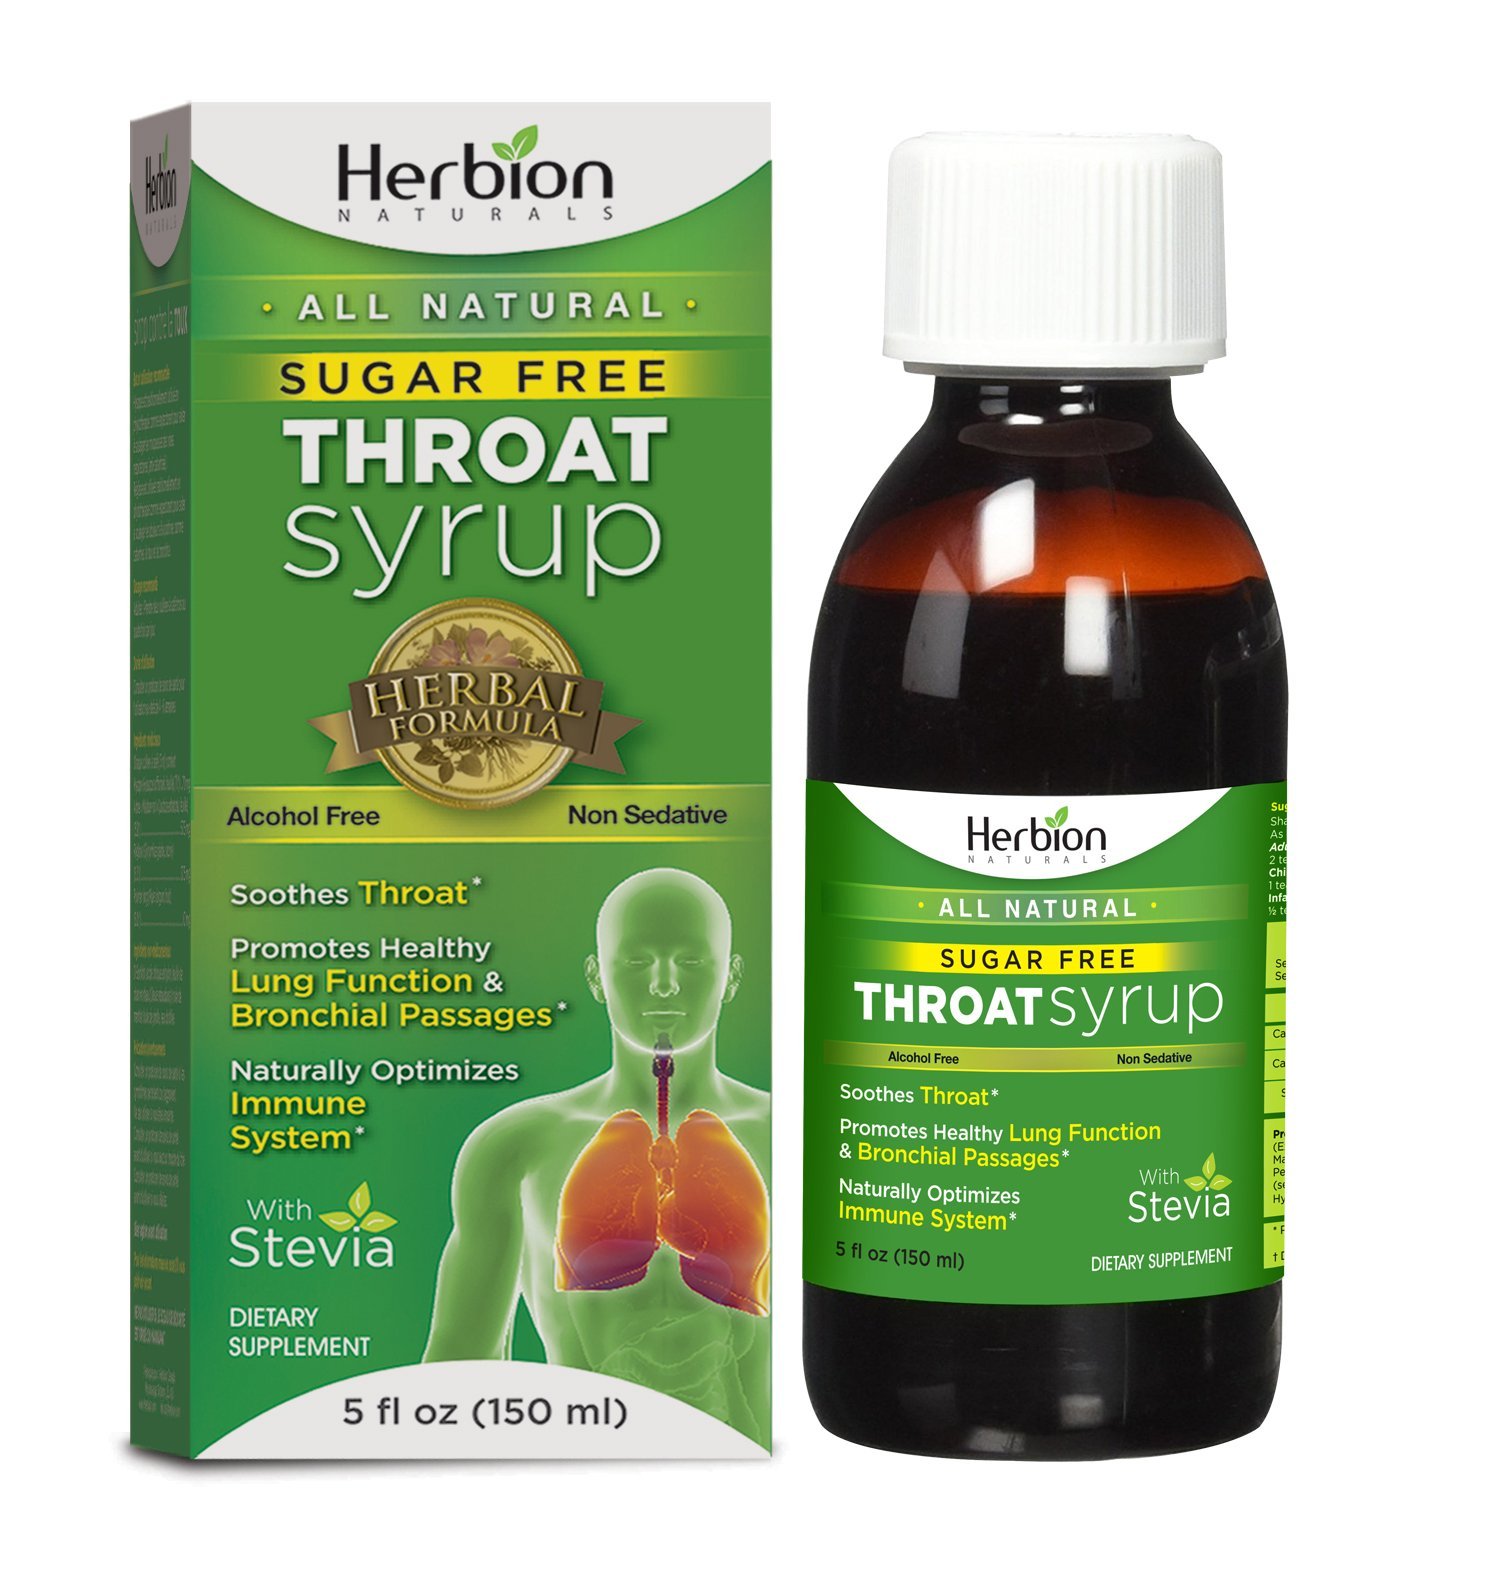 Herbion Naturals Sugar-Free Throat Syrup with Stevia, 5 fl oz - Naturally Tasty, Relieves Cough, Soothes Throat, Promotes Healthy Bronchial and Lung Function